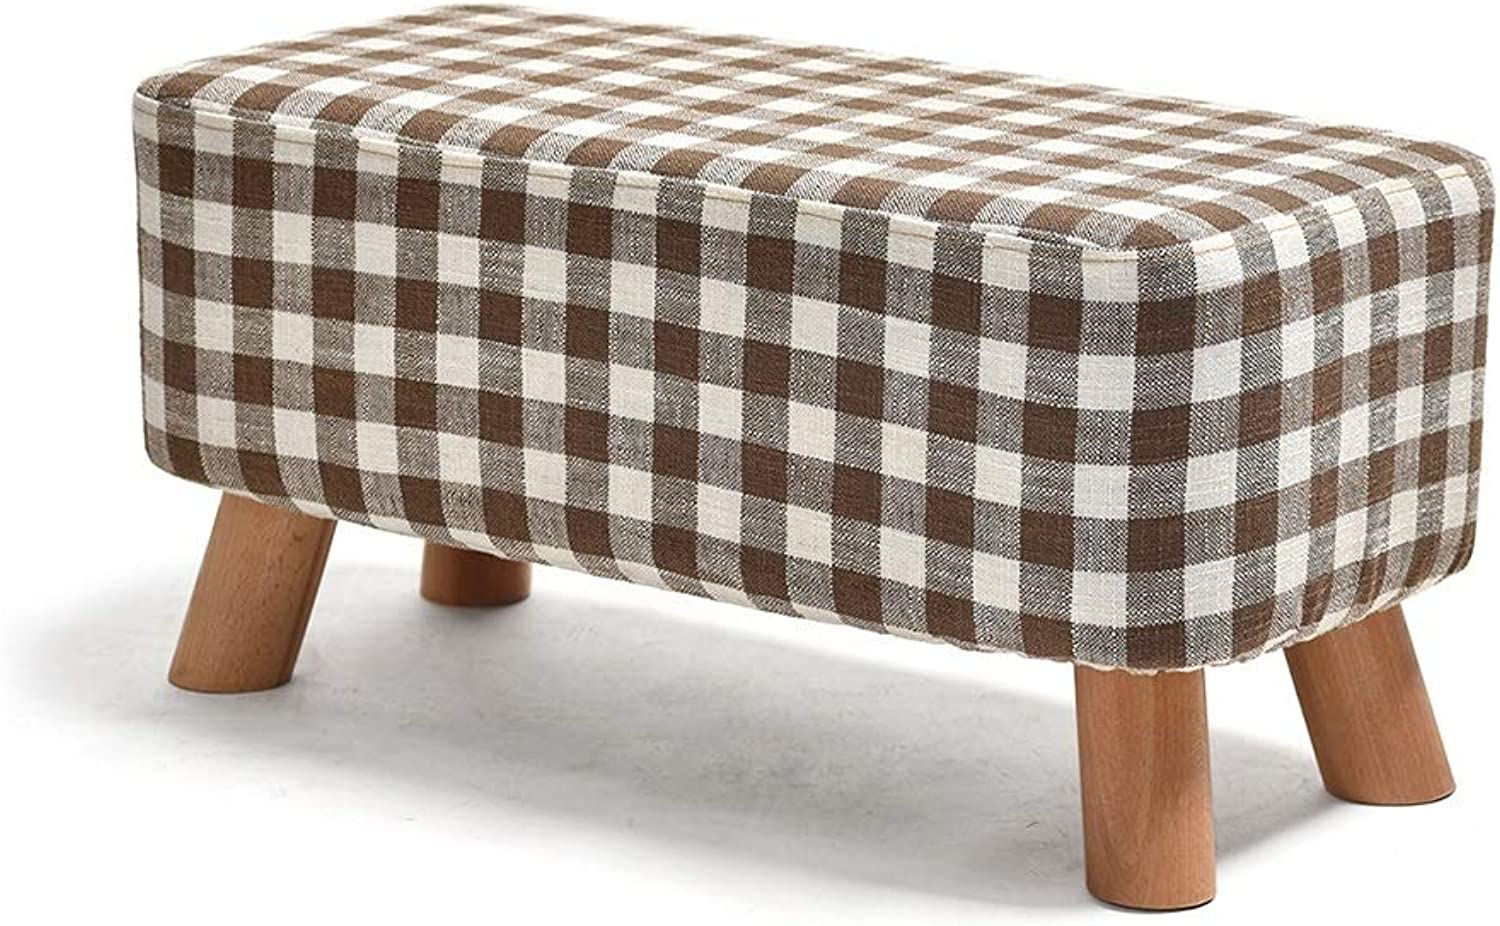 Footstool, Rectangular upholstered Sofa Footstool Solid Wood Square Fabric Bedroom Living Room 4 Legs HPLL (color   4, Size   57  29  28cm)